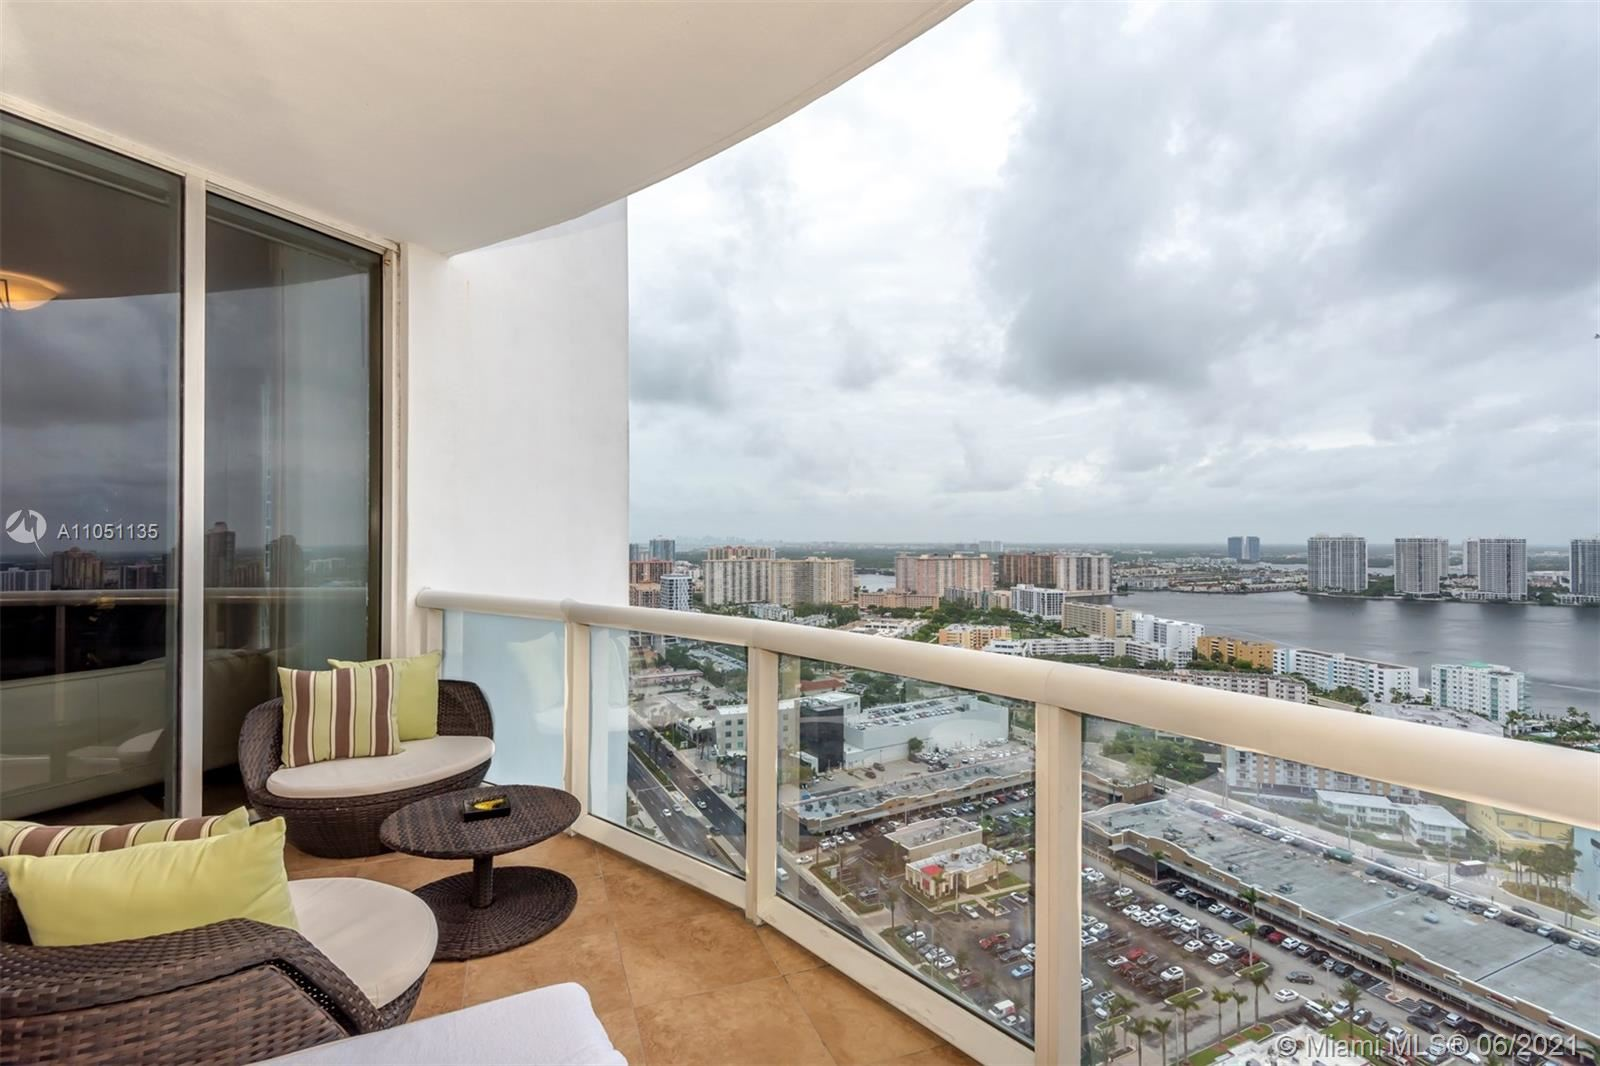 18201 Collins Ave #4001A, Sunny Isles, FL 33160 - #: A11051135